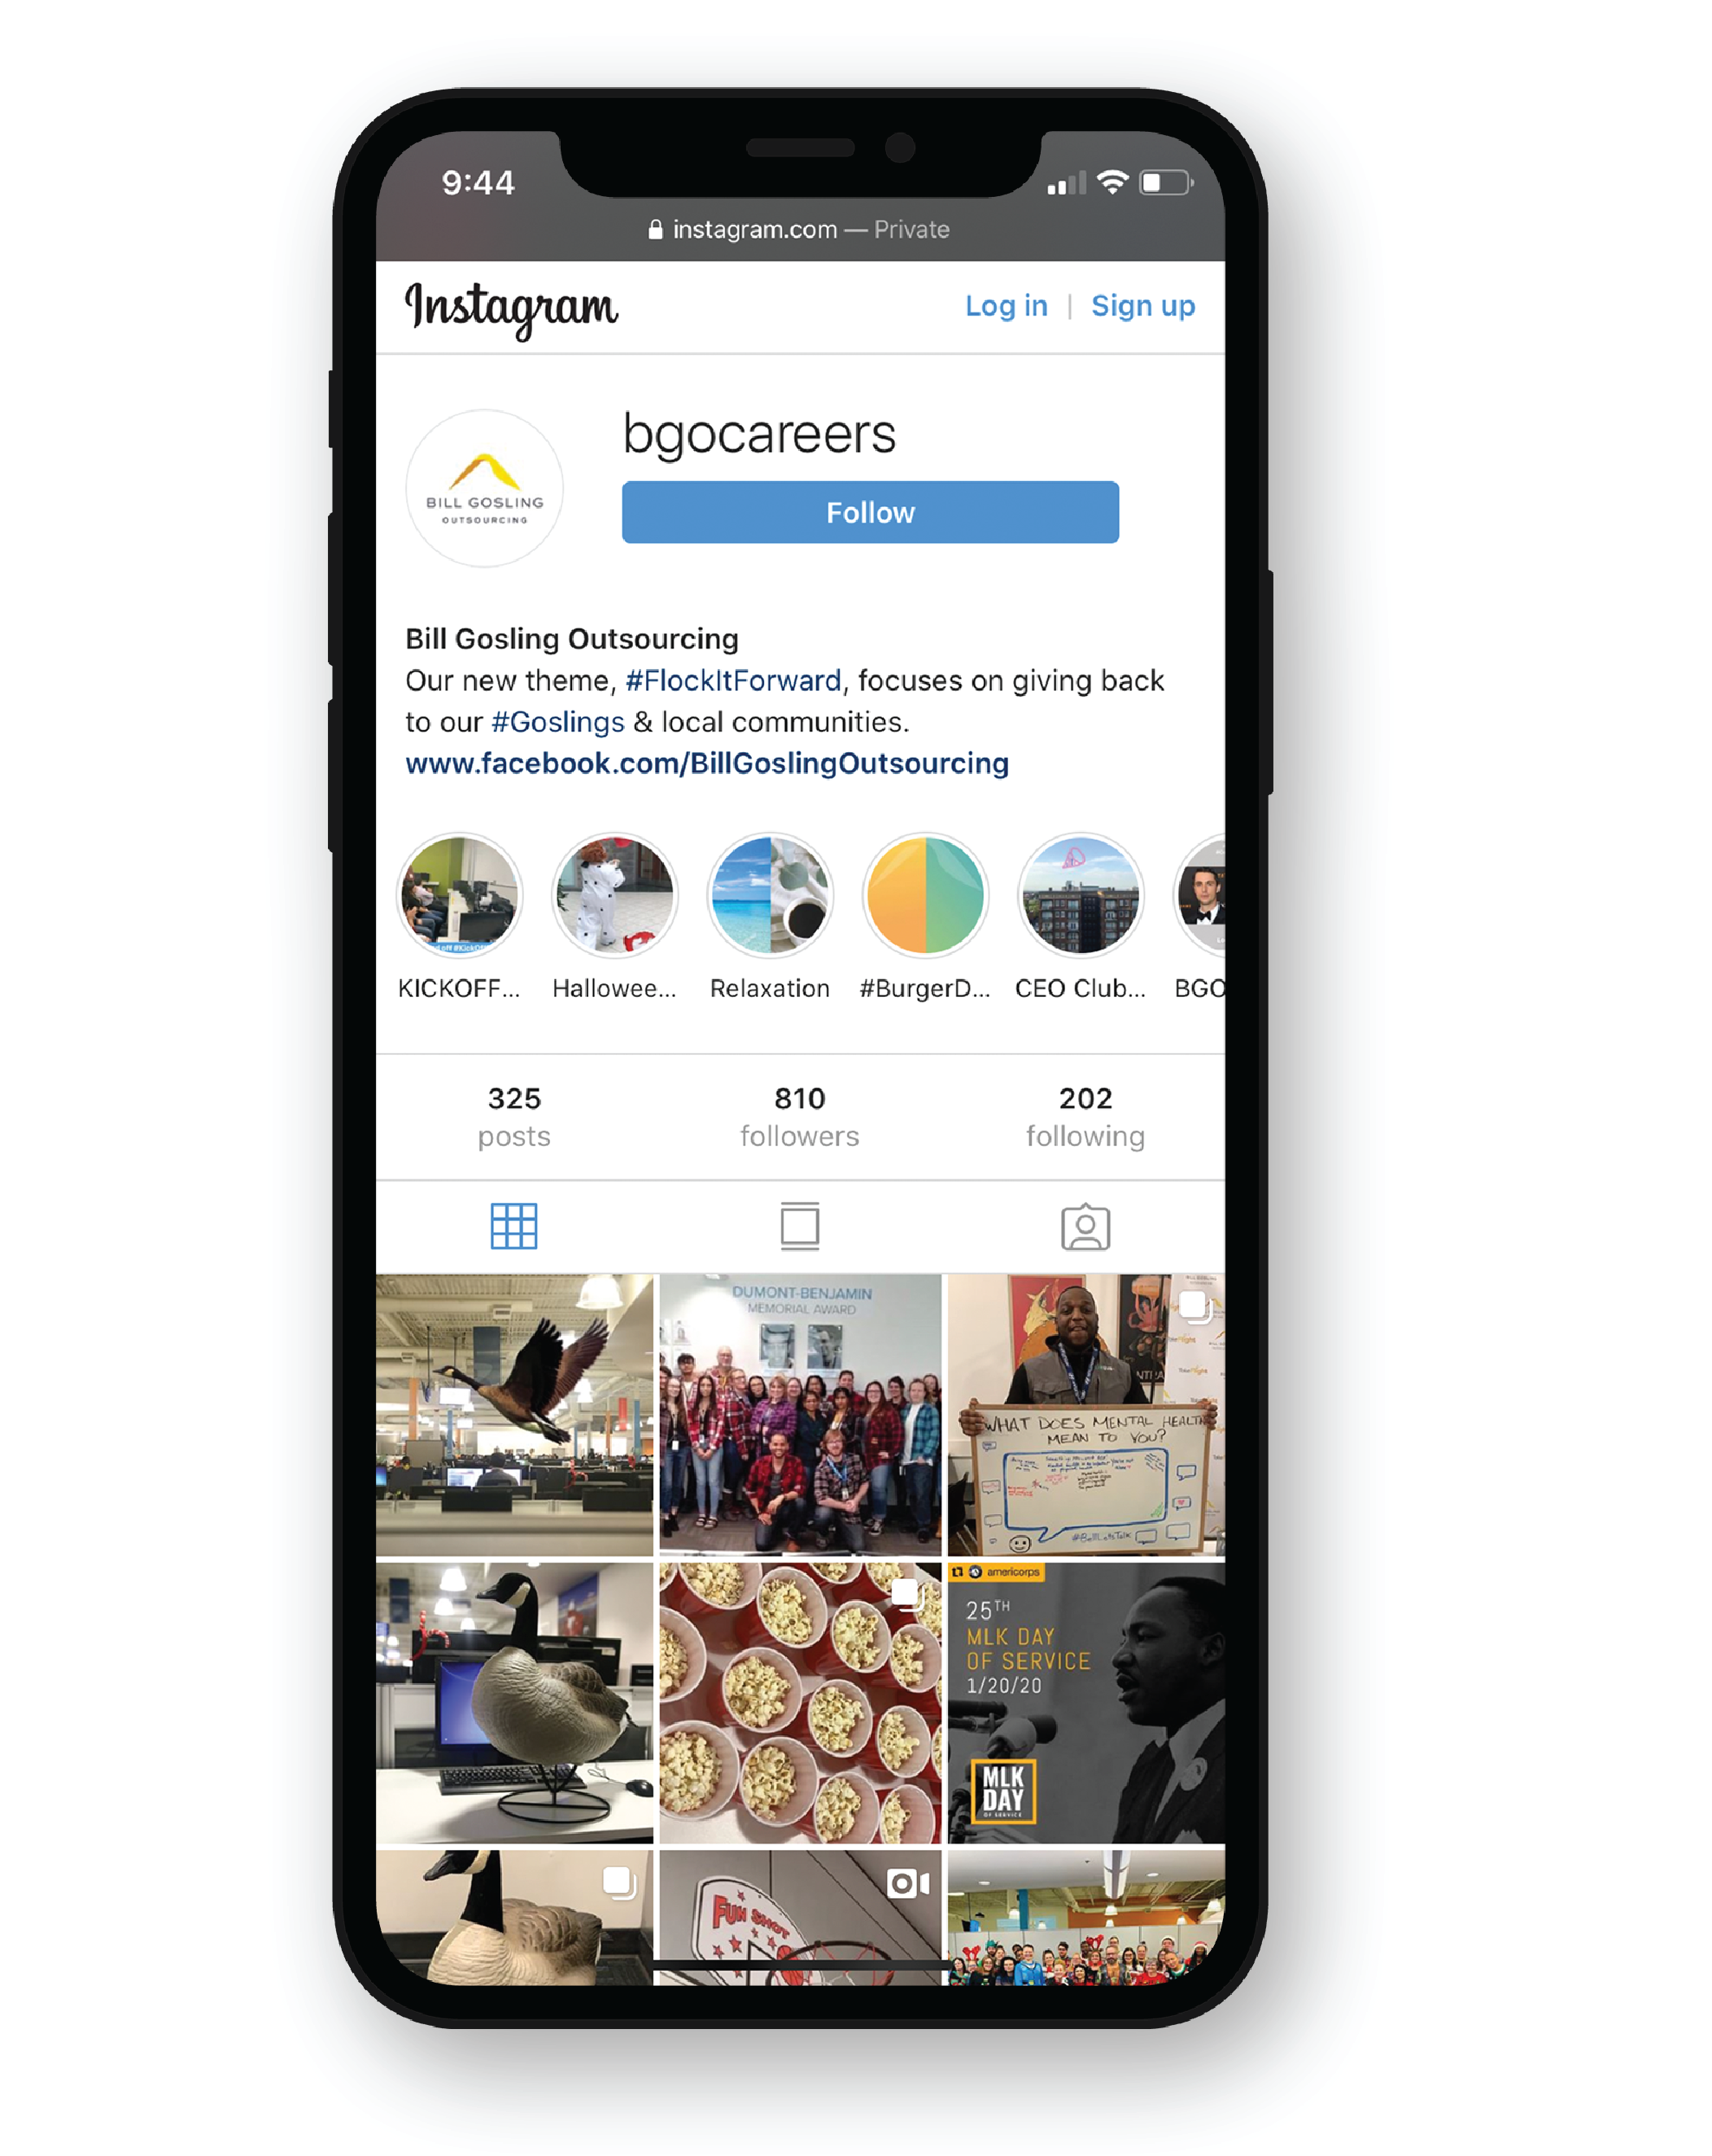 Instagram page on phone